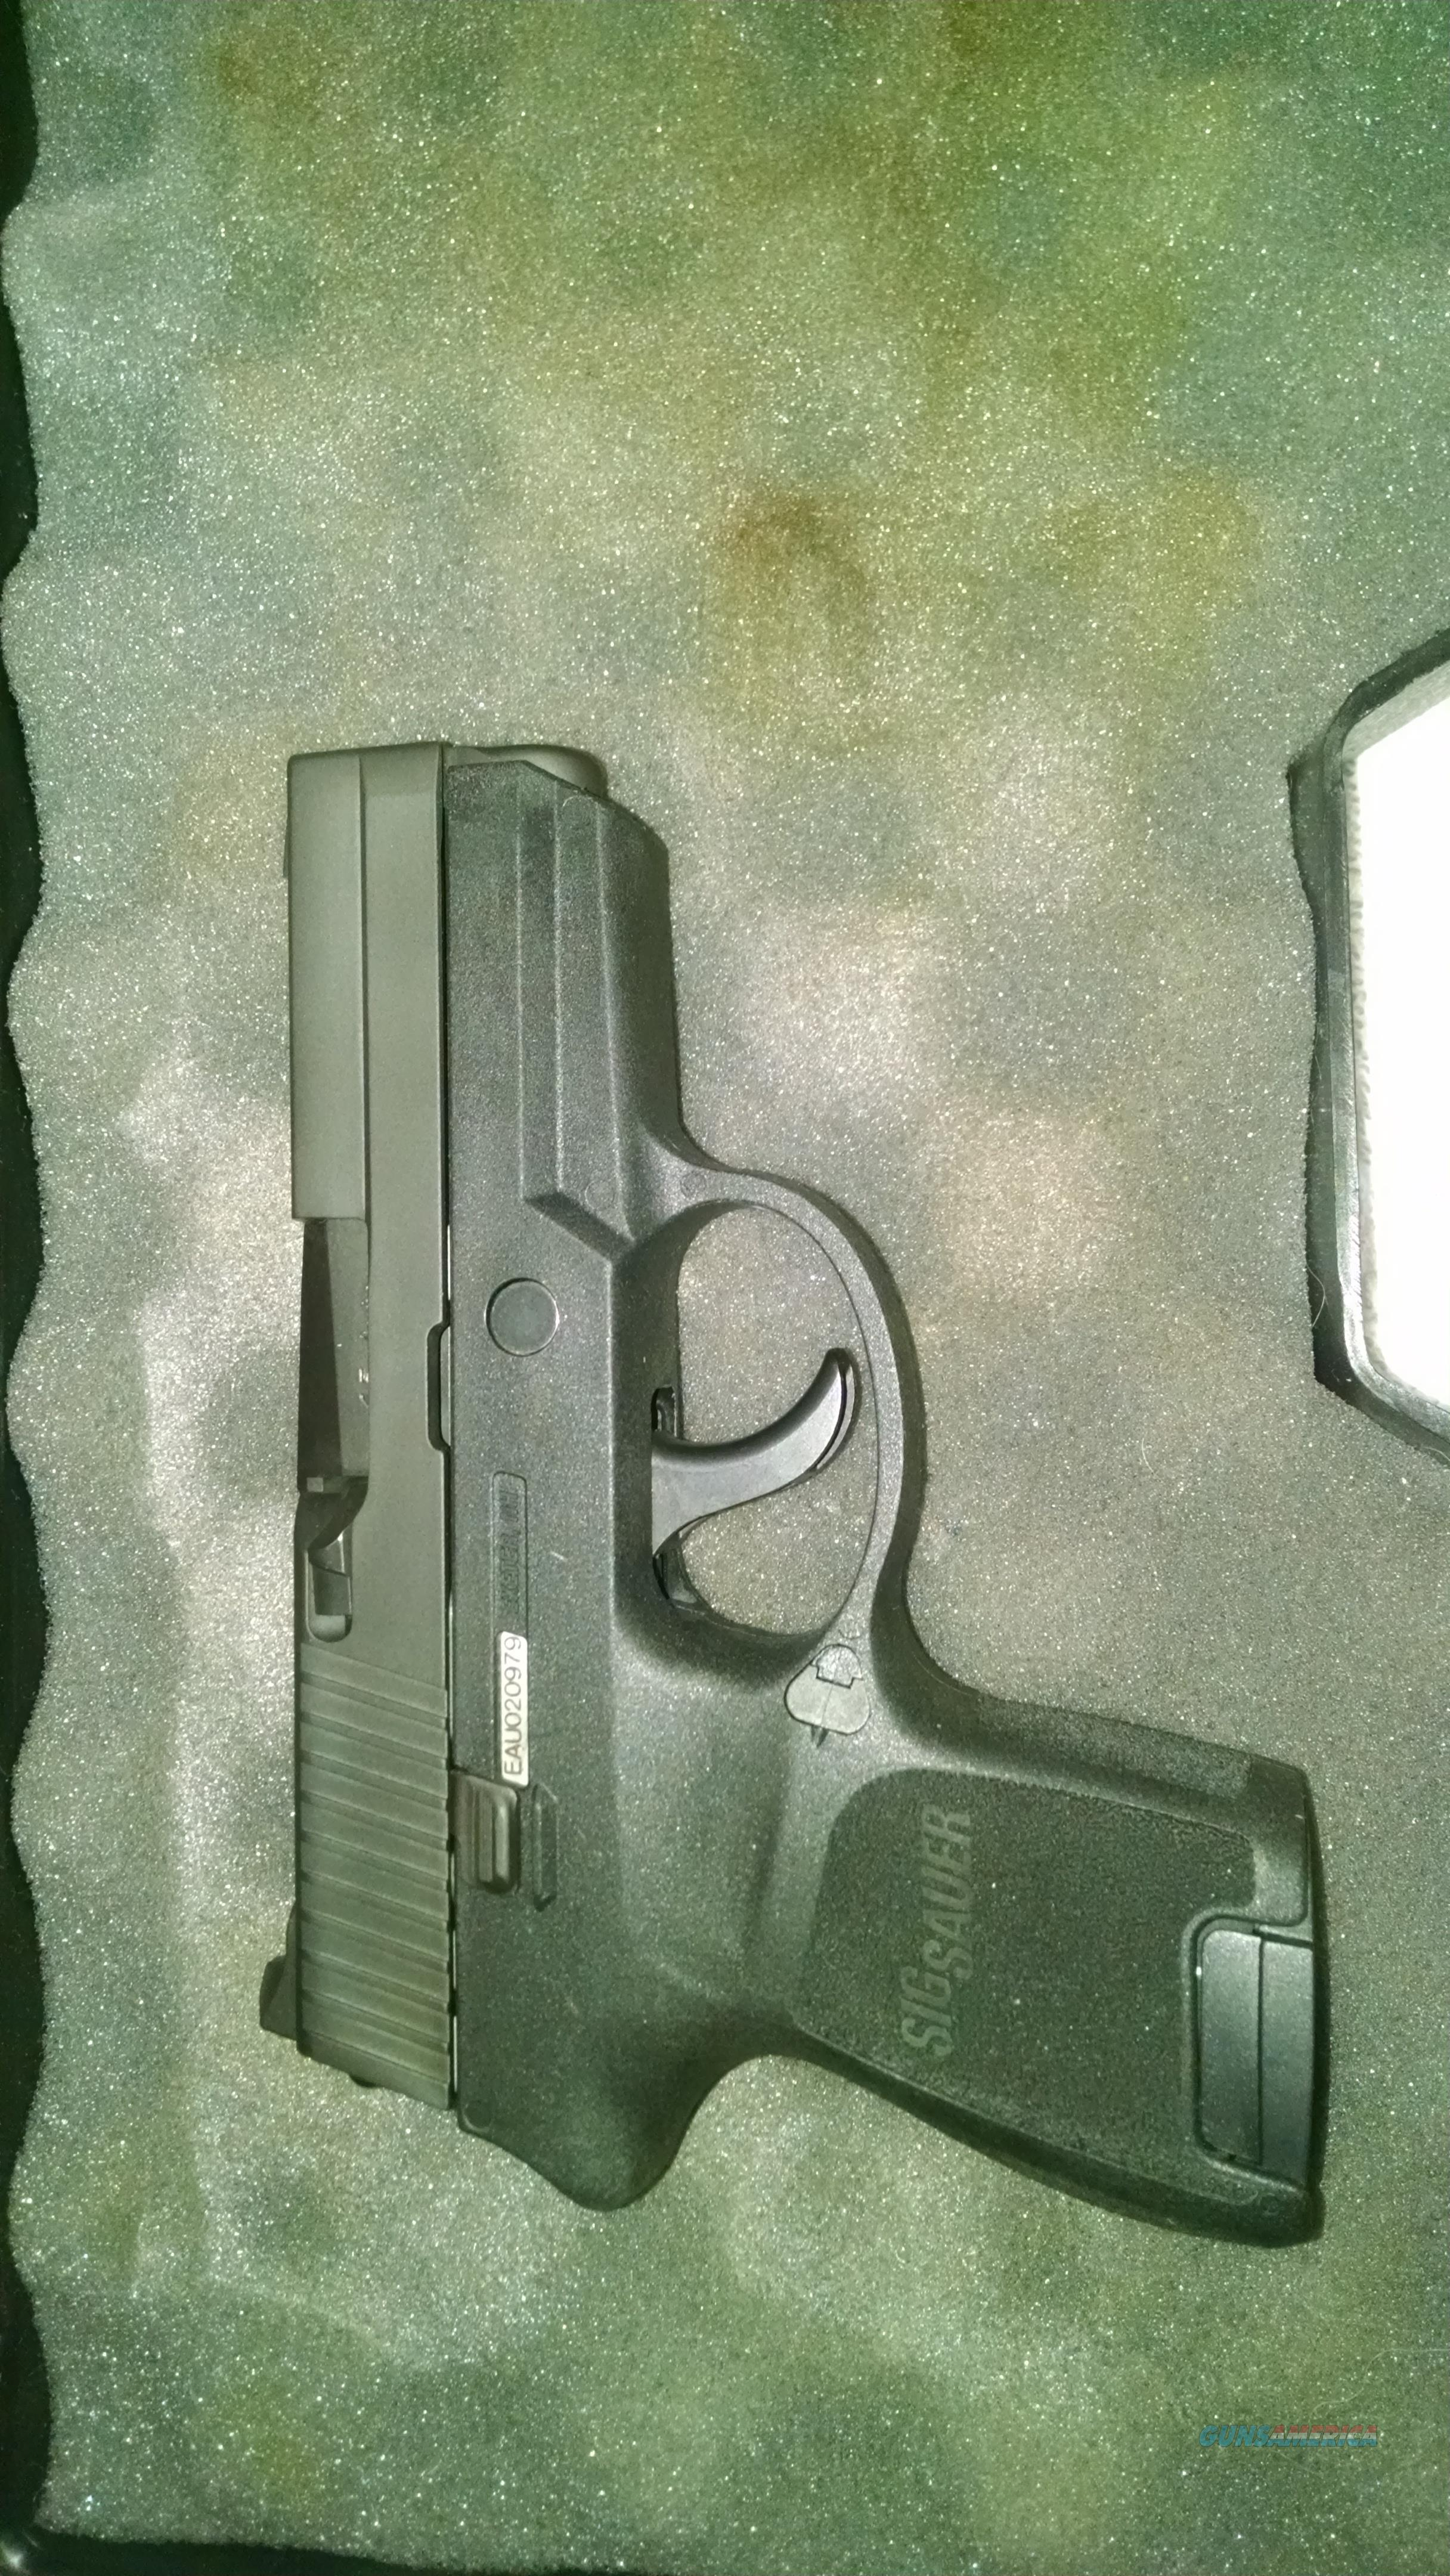 SigArms P250, 45ACP, Sub Compact  Guns > Pistols > Sig - Sauer/Sigarms Pistols > P250